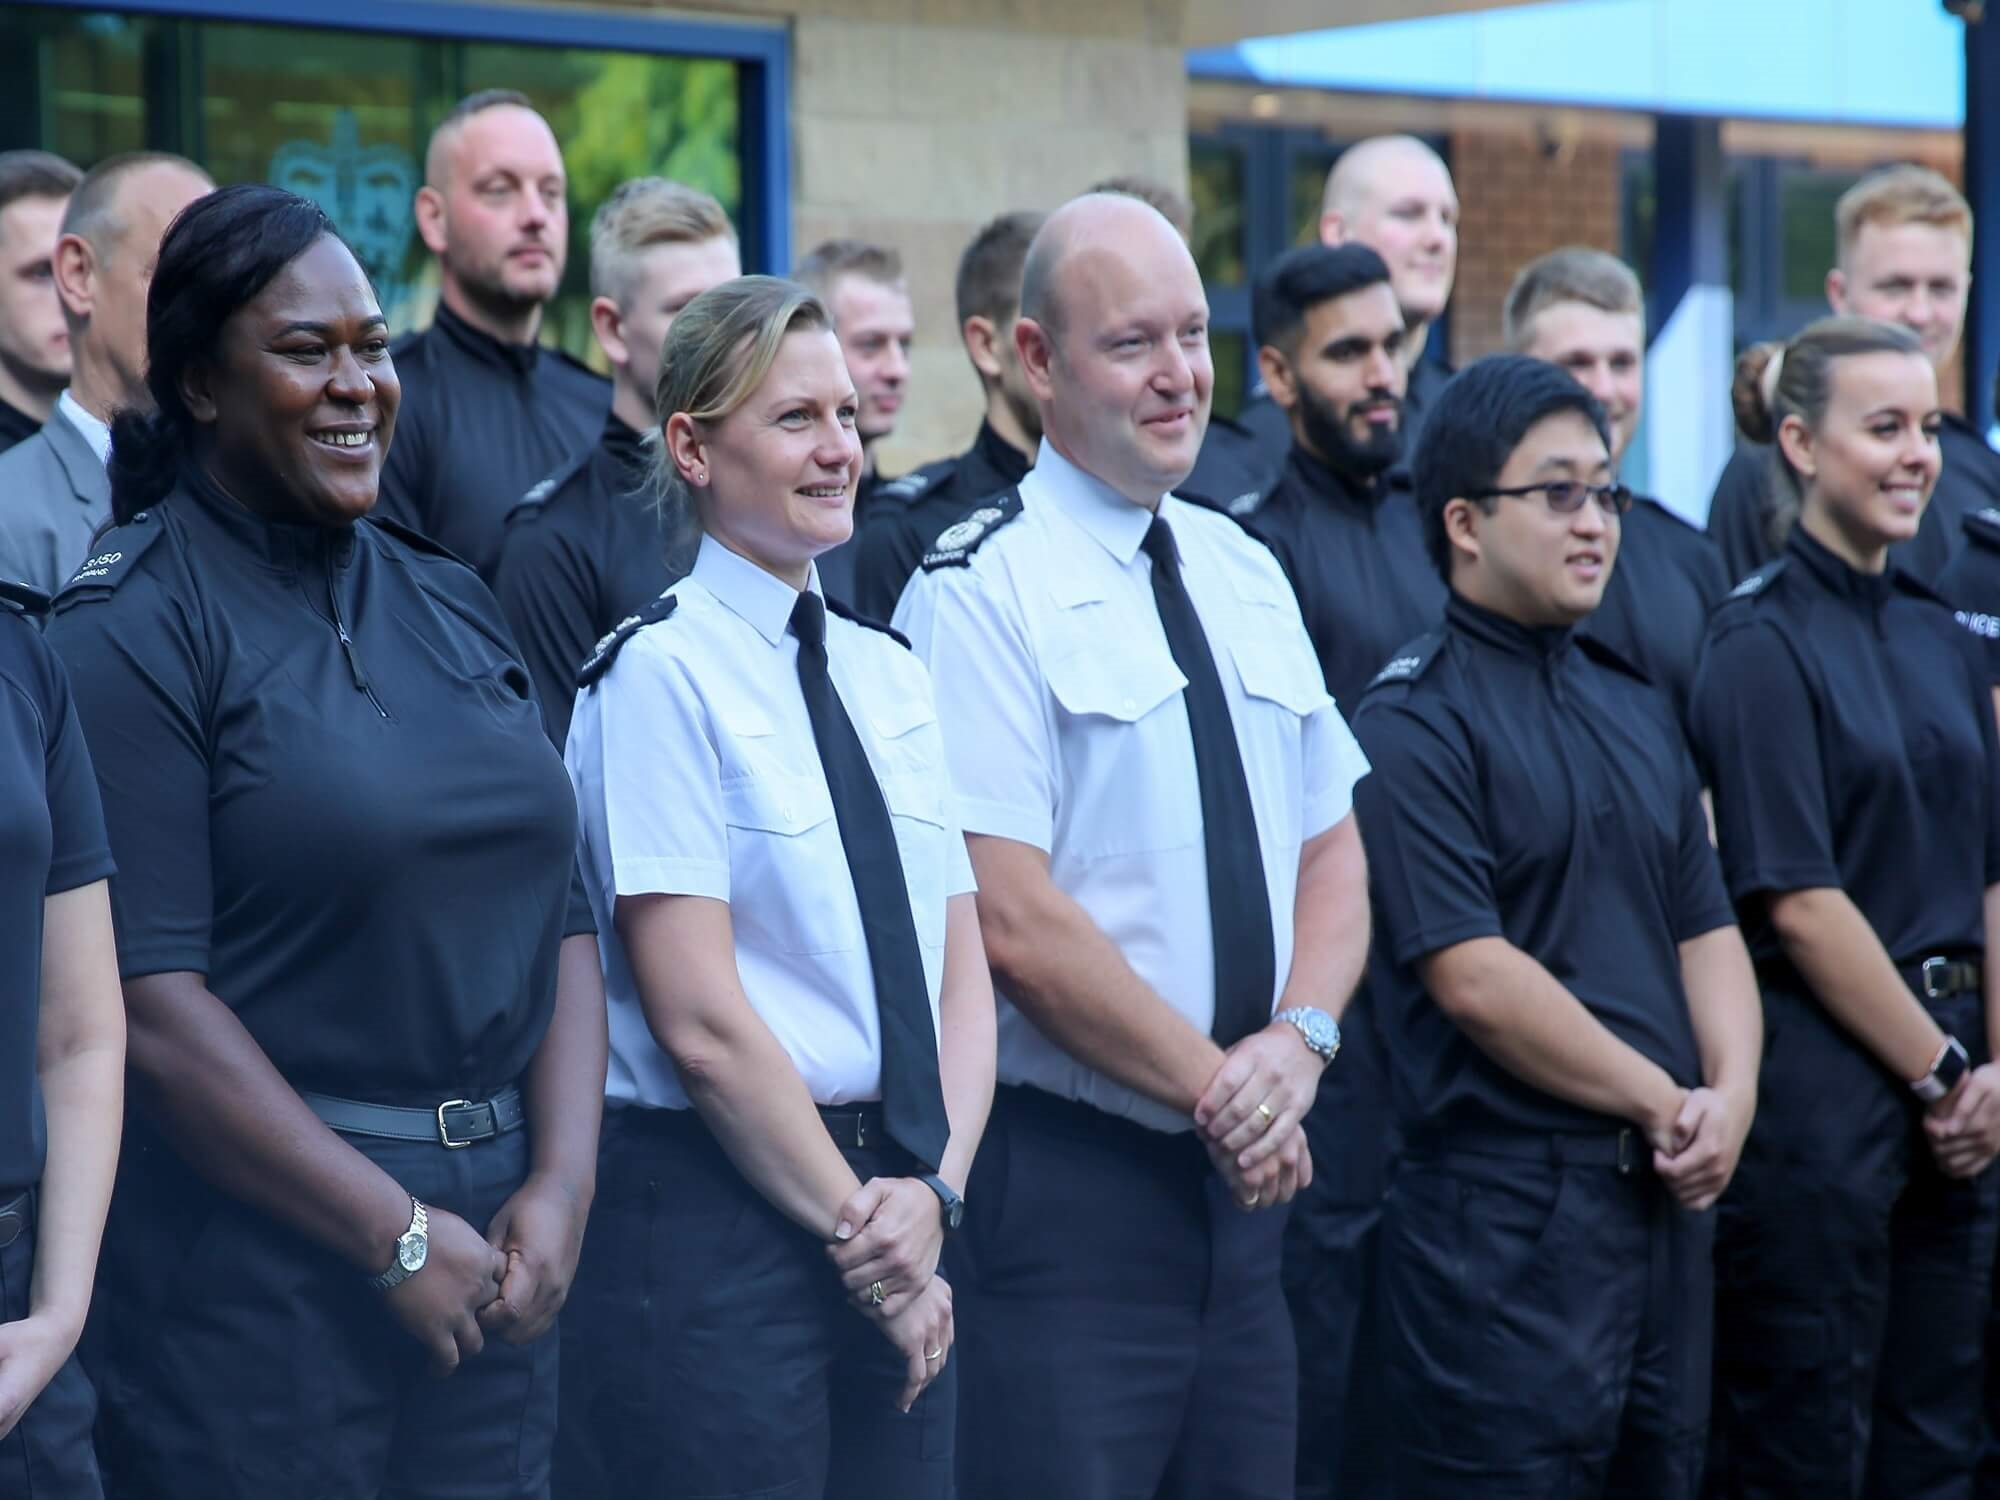 Nottinghamshire Police, which works with the University of Derby, has been nominated for an Apprenticeship Diversity Award as part of this year's Apprenticeship Awards